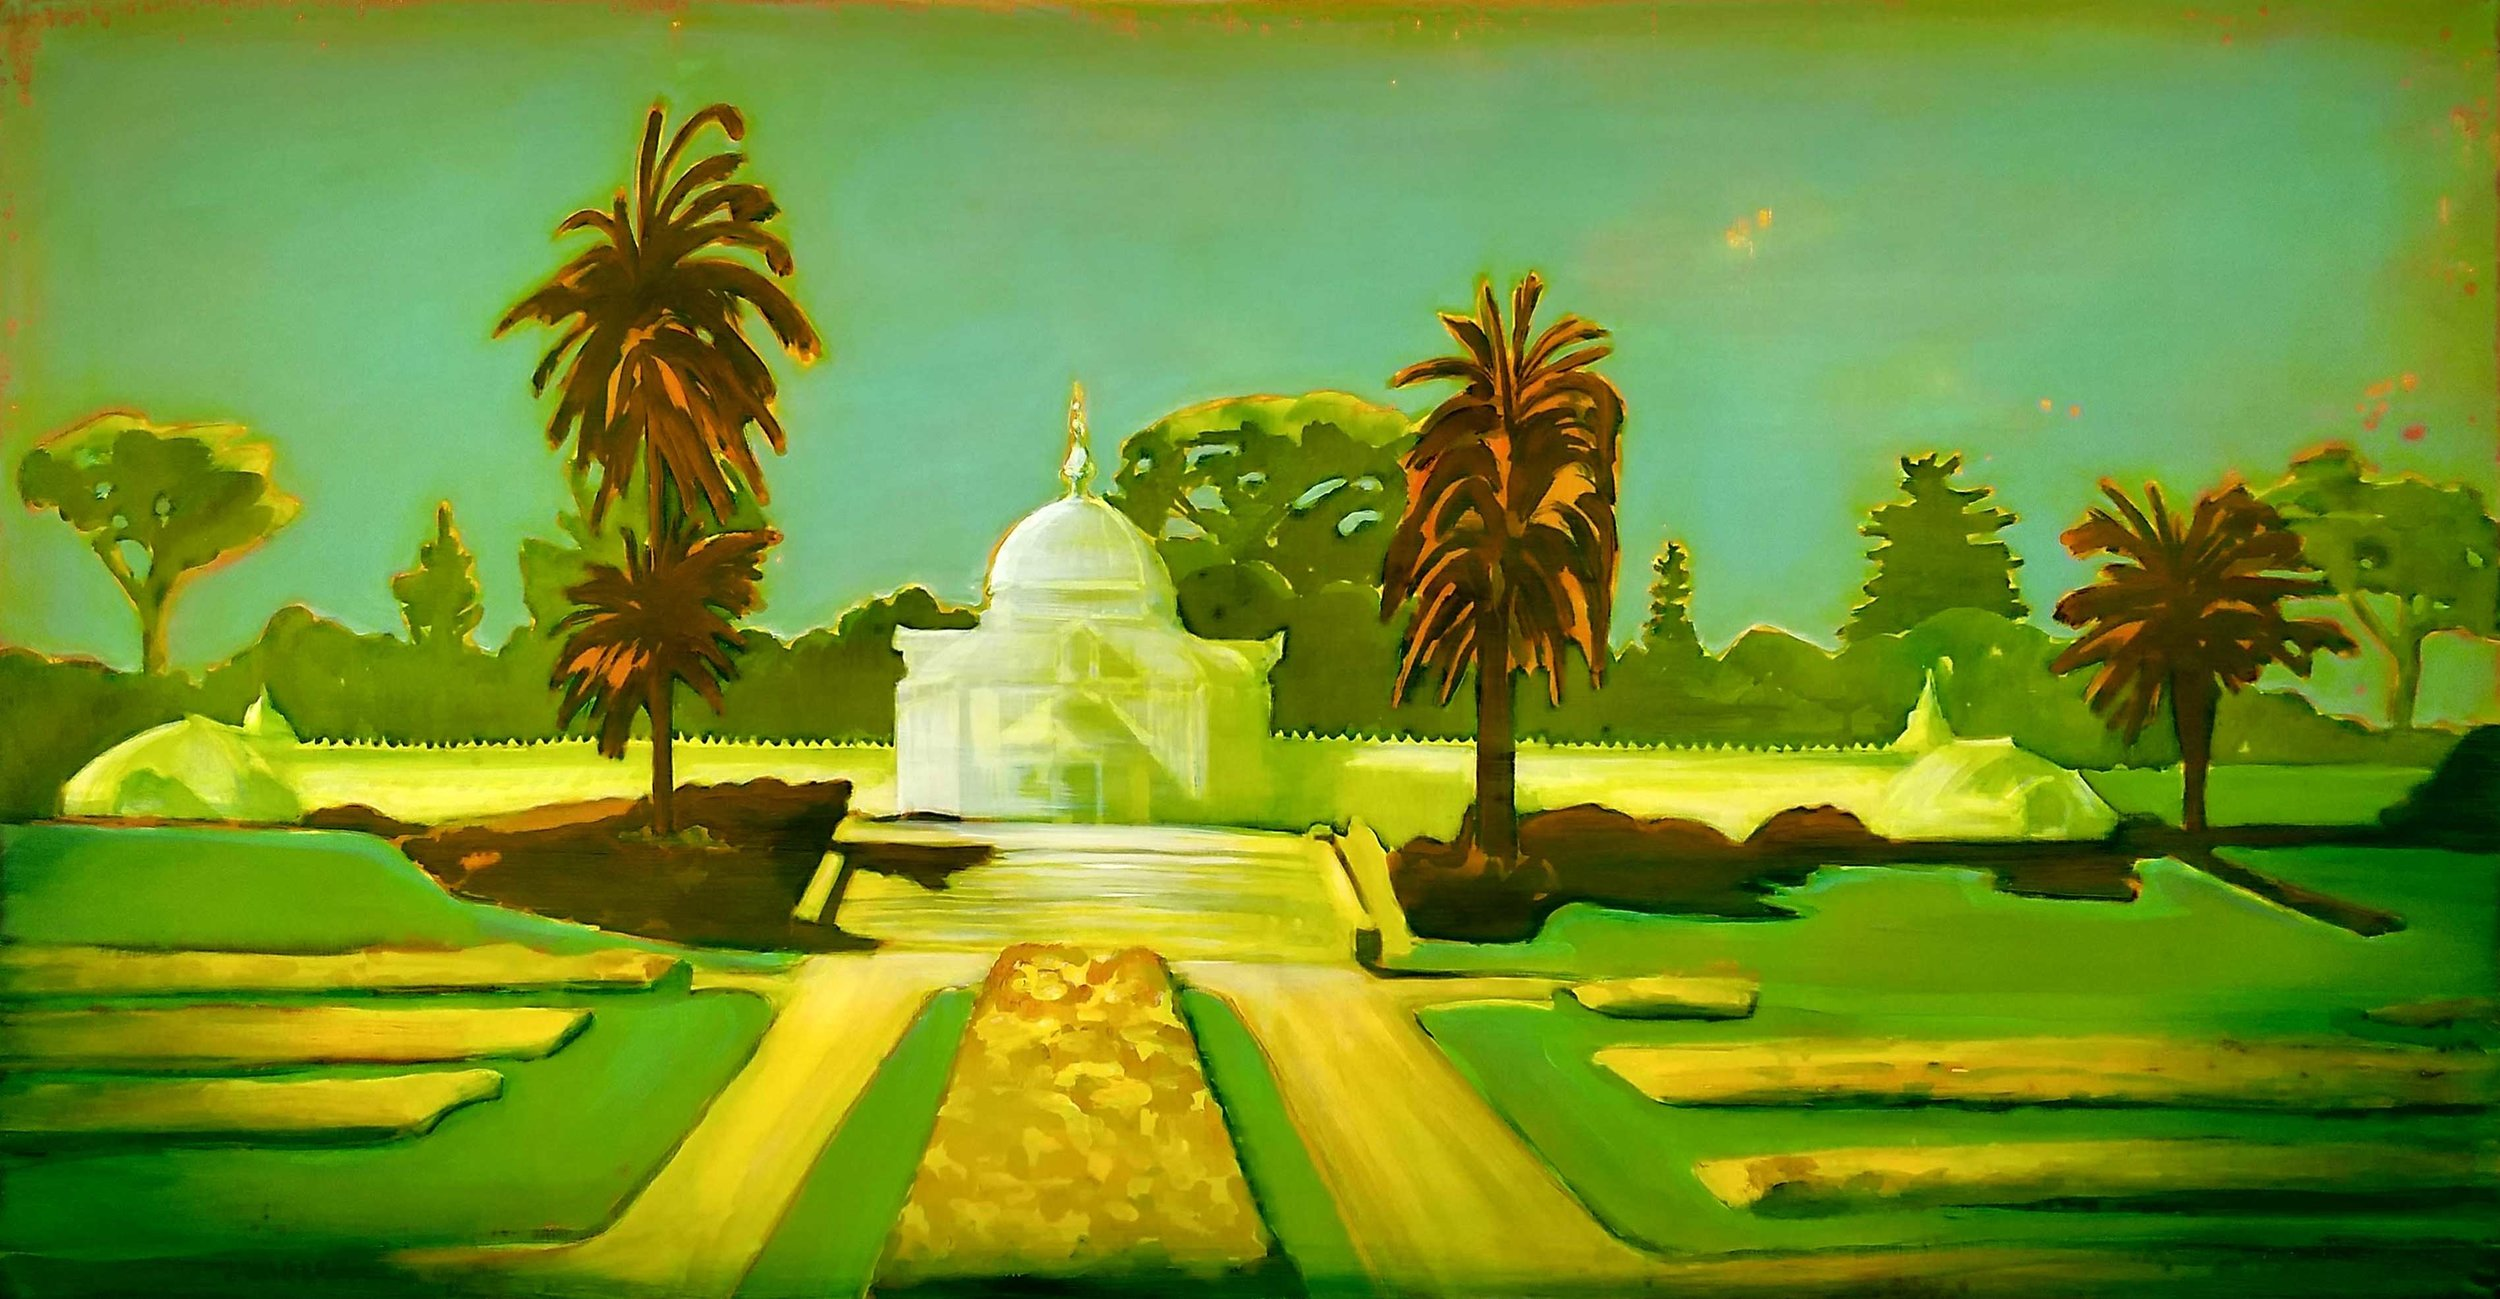 GOLDEN GATE PARK  70 x 140 cm Acrylic and epoxy on canvas